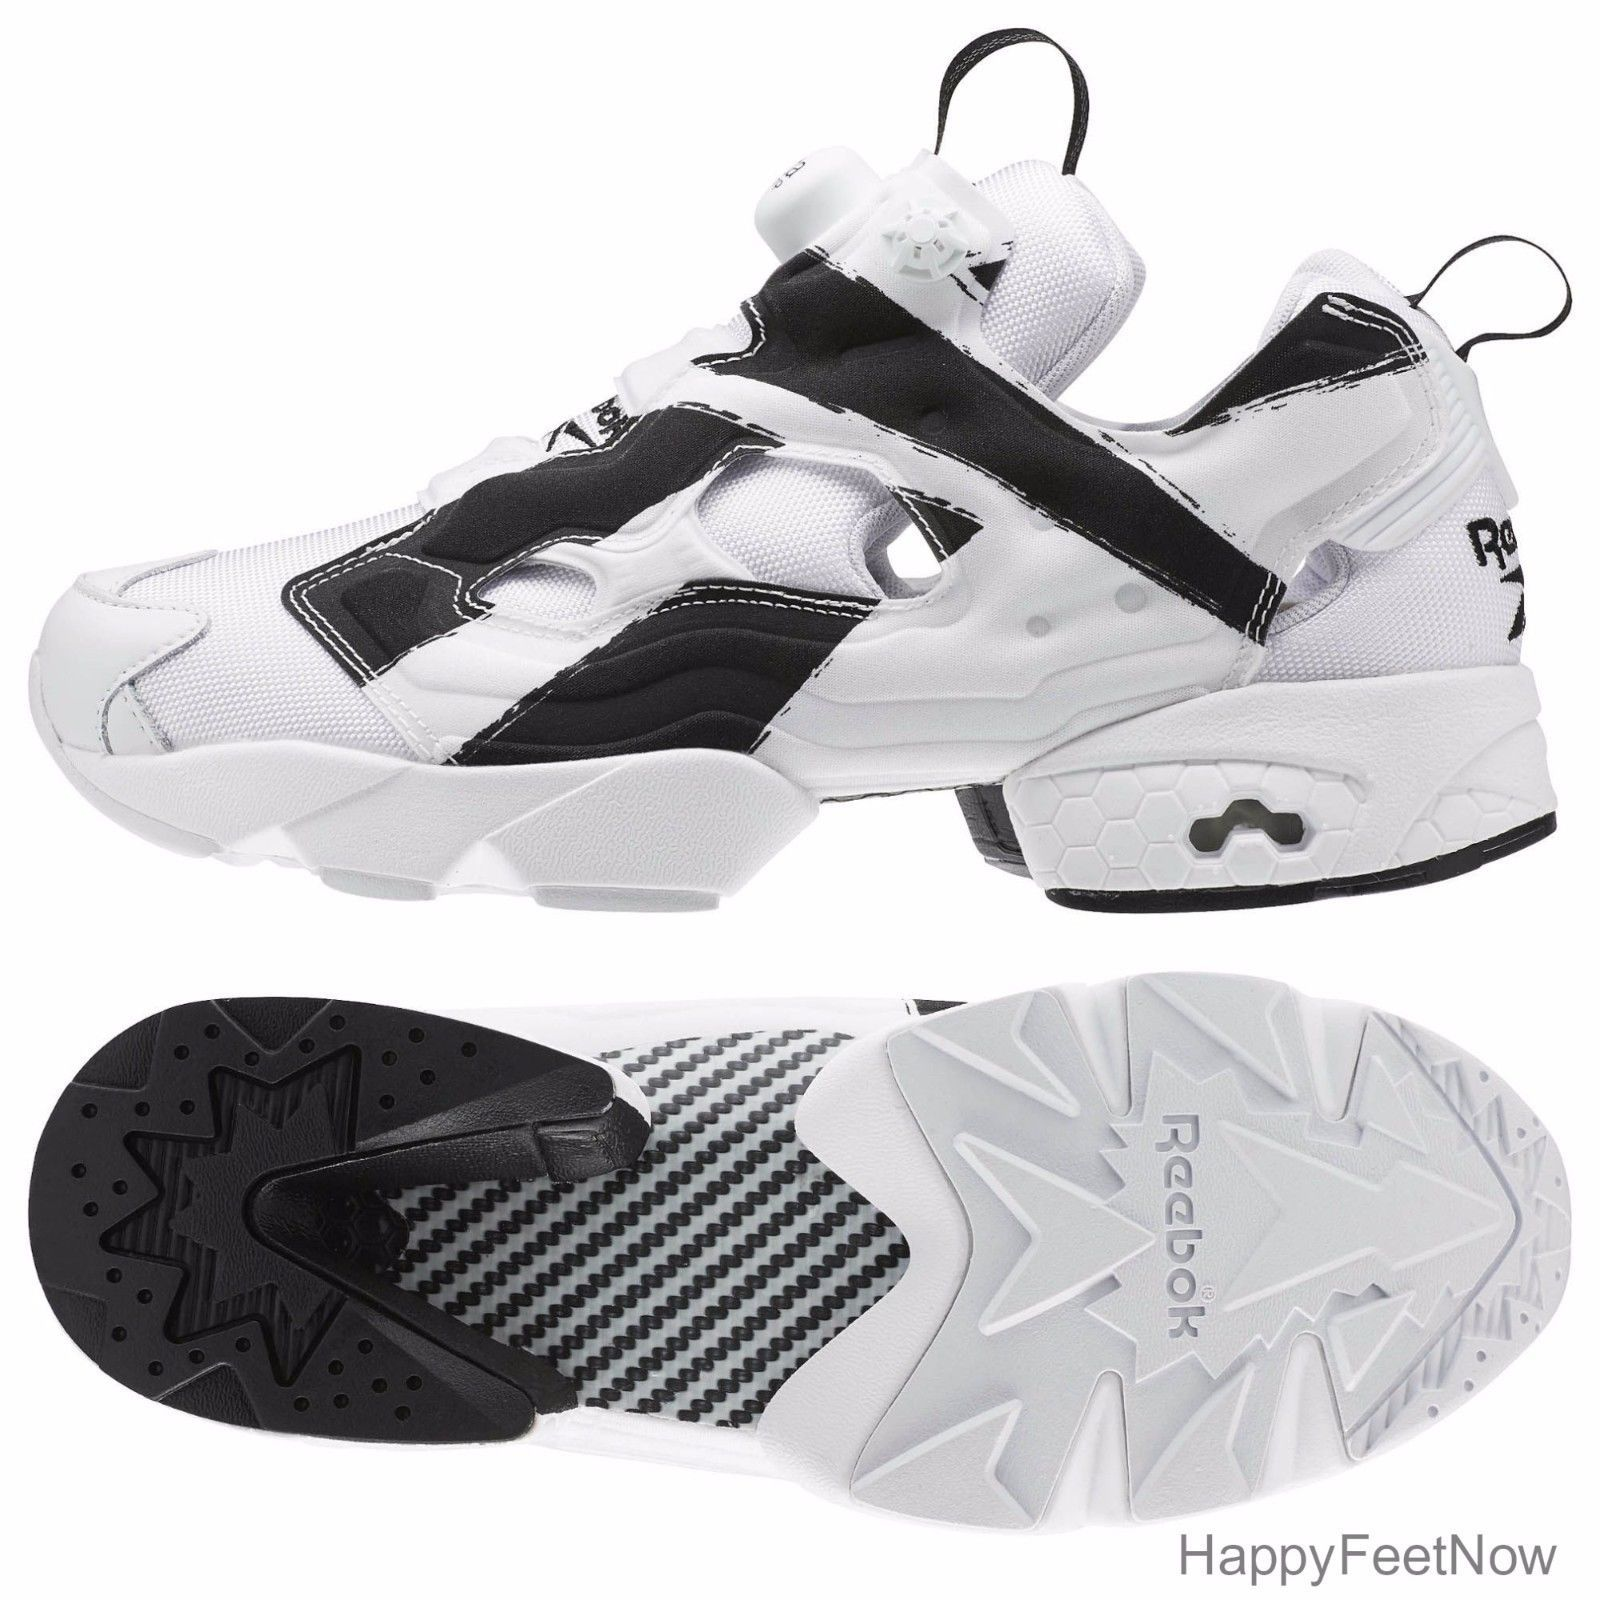 REEBOK FUTURE INSTAPUMP FURY OVERBRANDED MENS SHOES SIZE 10.5 WHITE BLACK AR1413